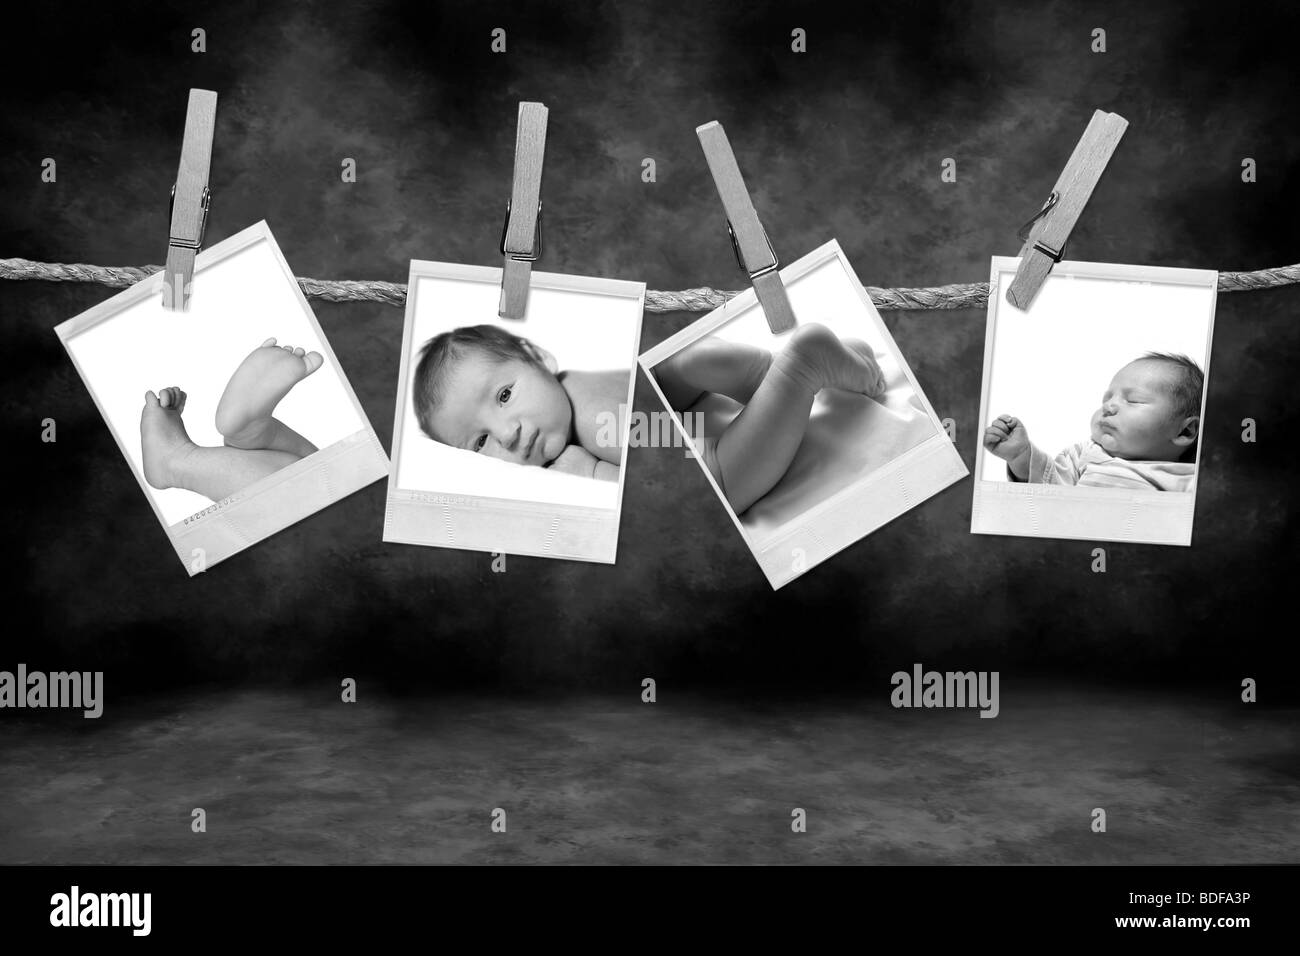 Black and White Photographs Hanging on a Rope By Clothespins on a Grunge Background - Stock Image